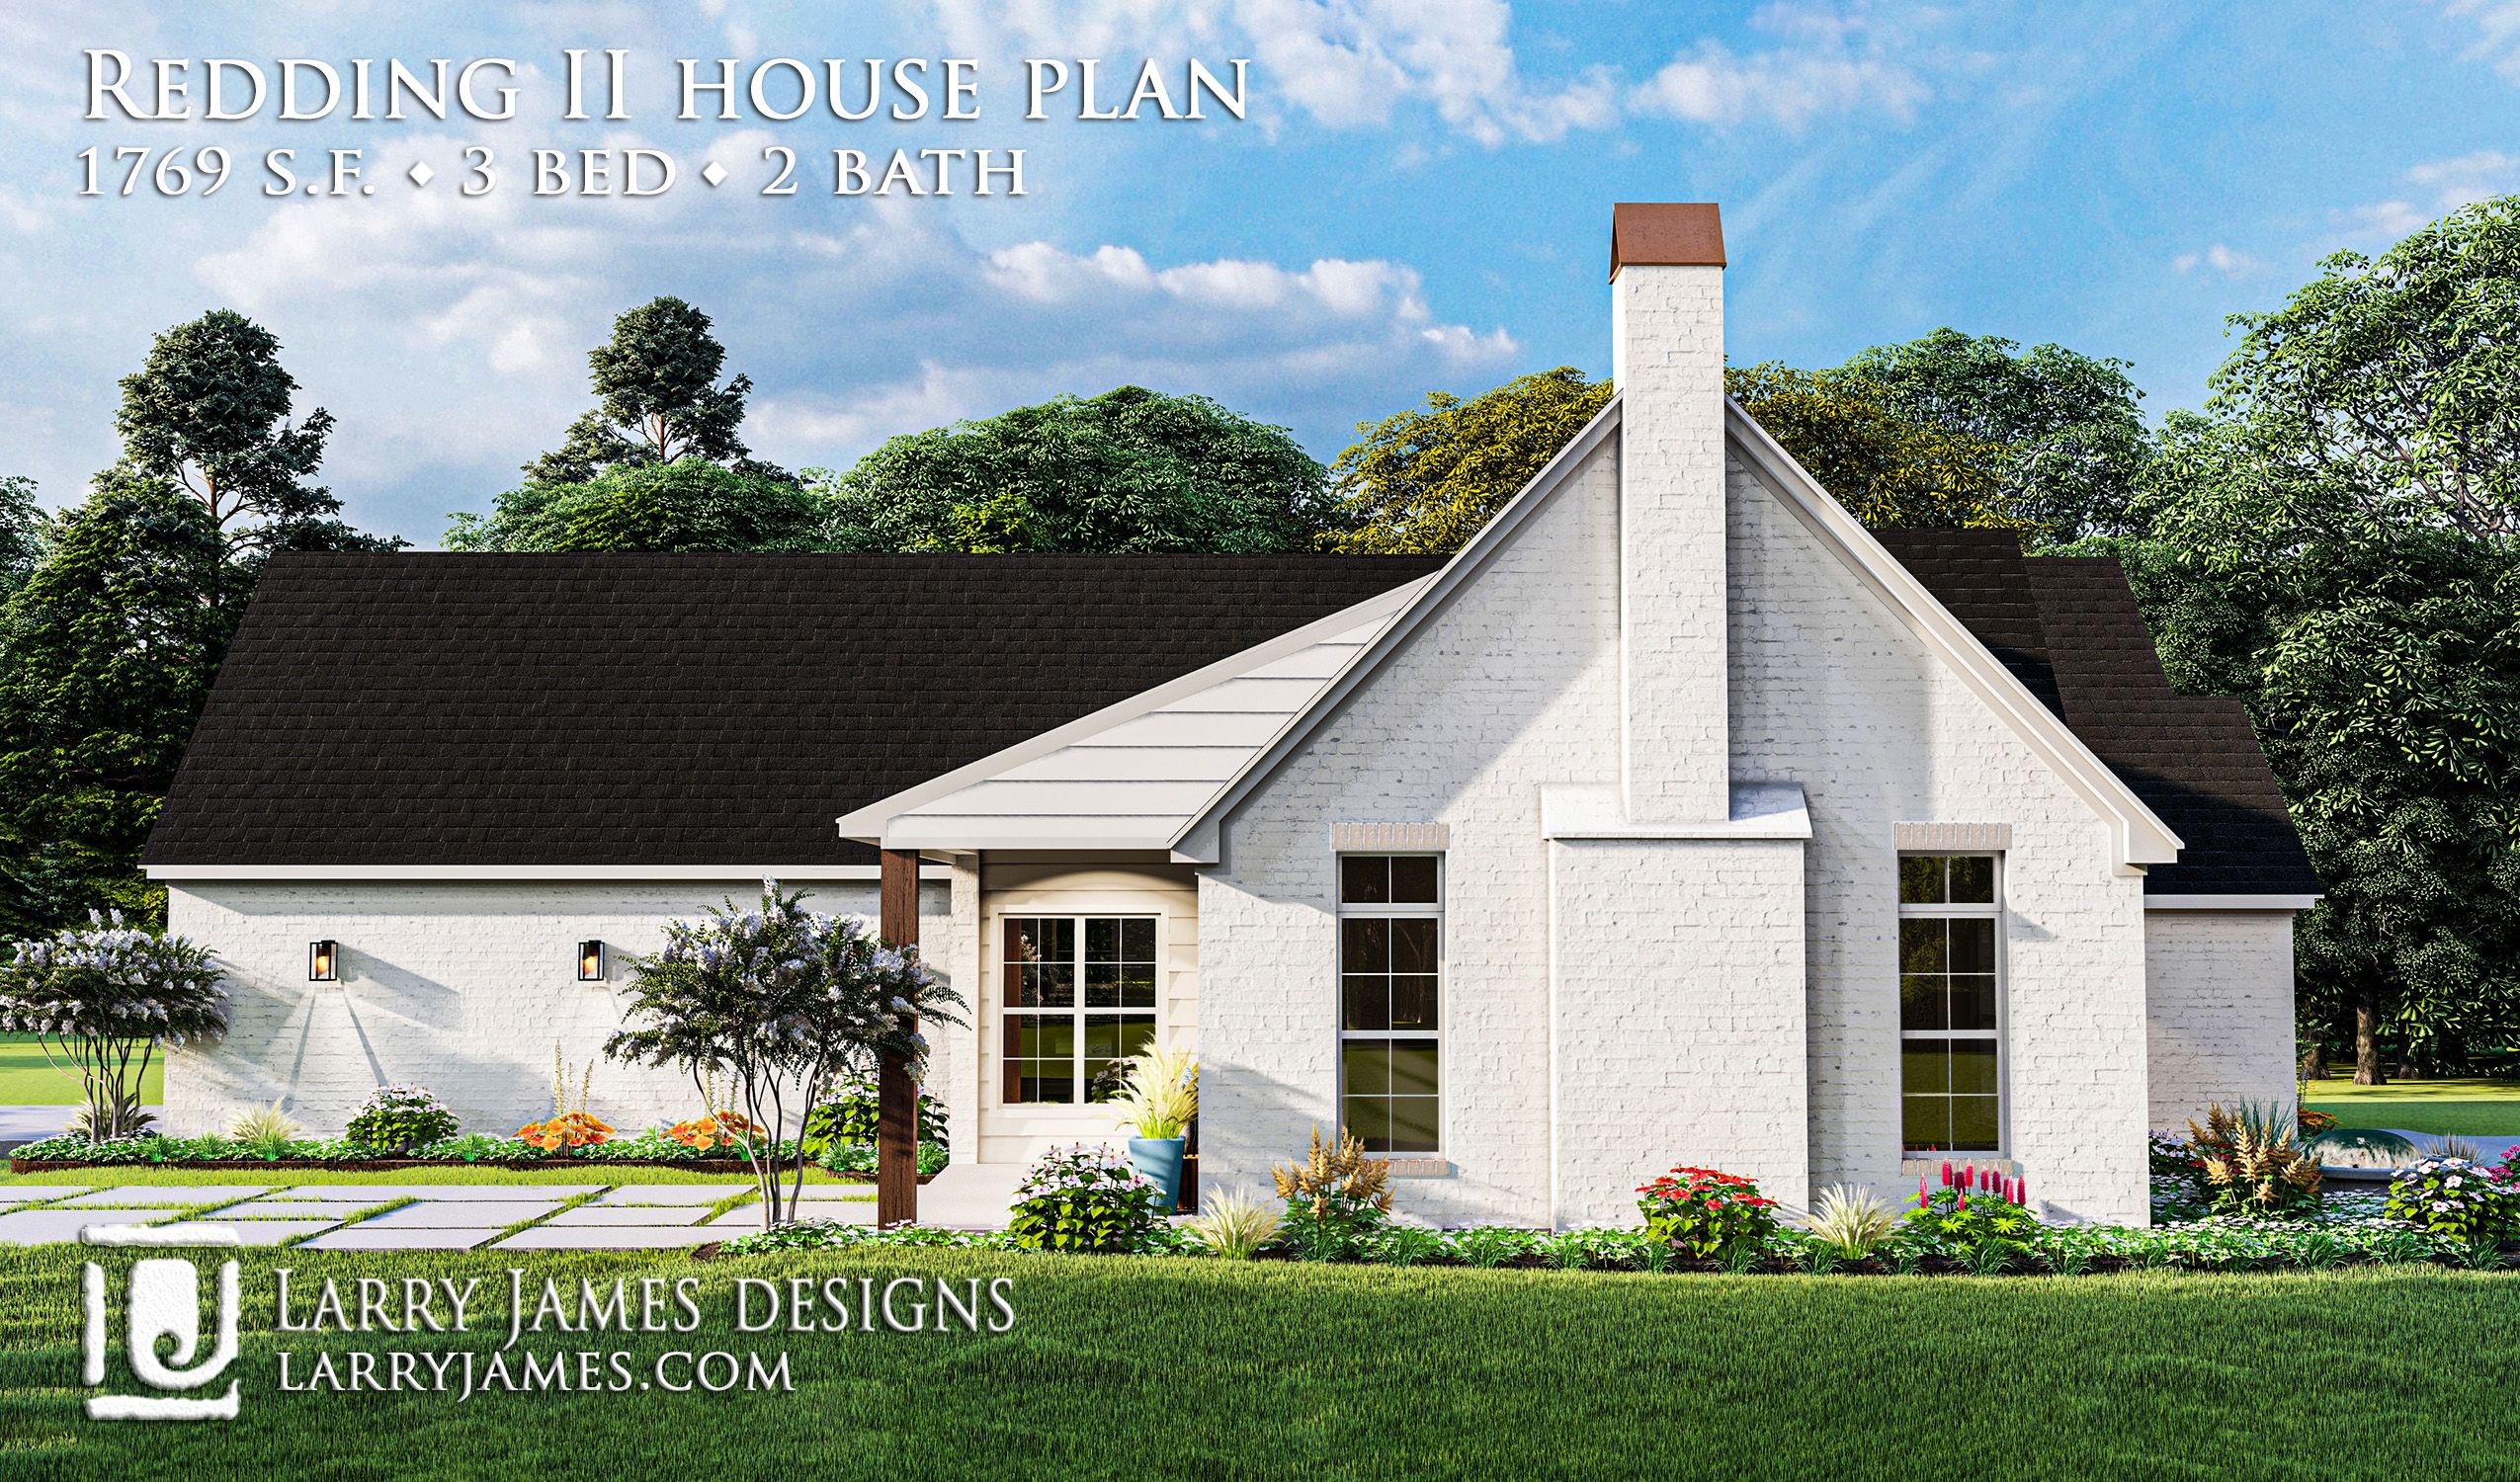 Redding Ii House Plan 20011 Cottage Style House Plans Country Style House Plans Cottage Style Homes